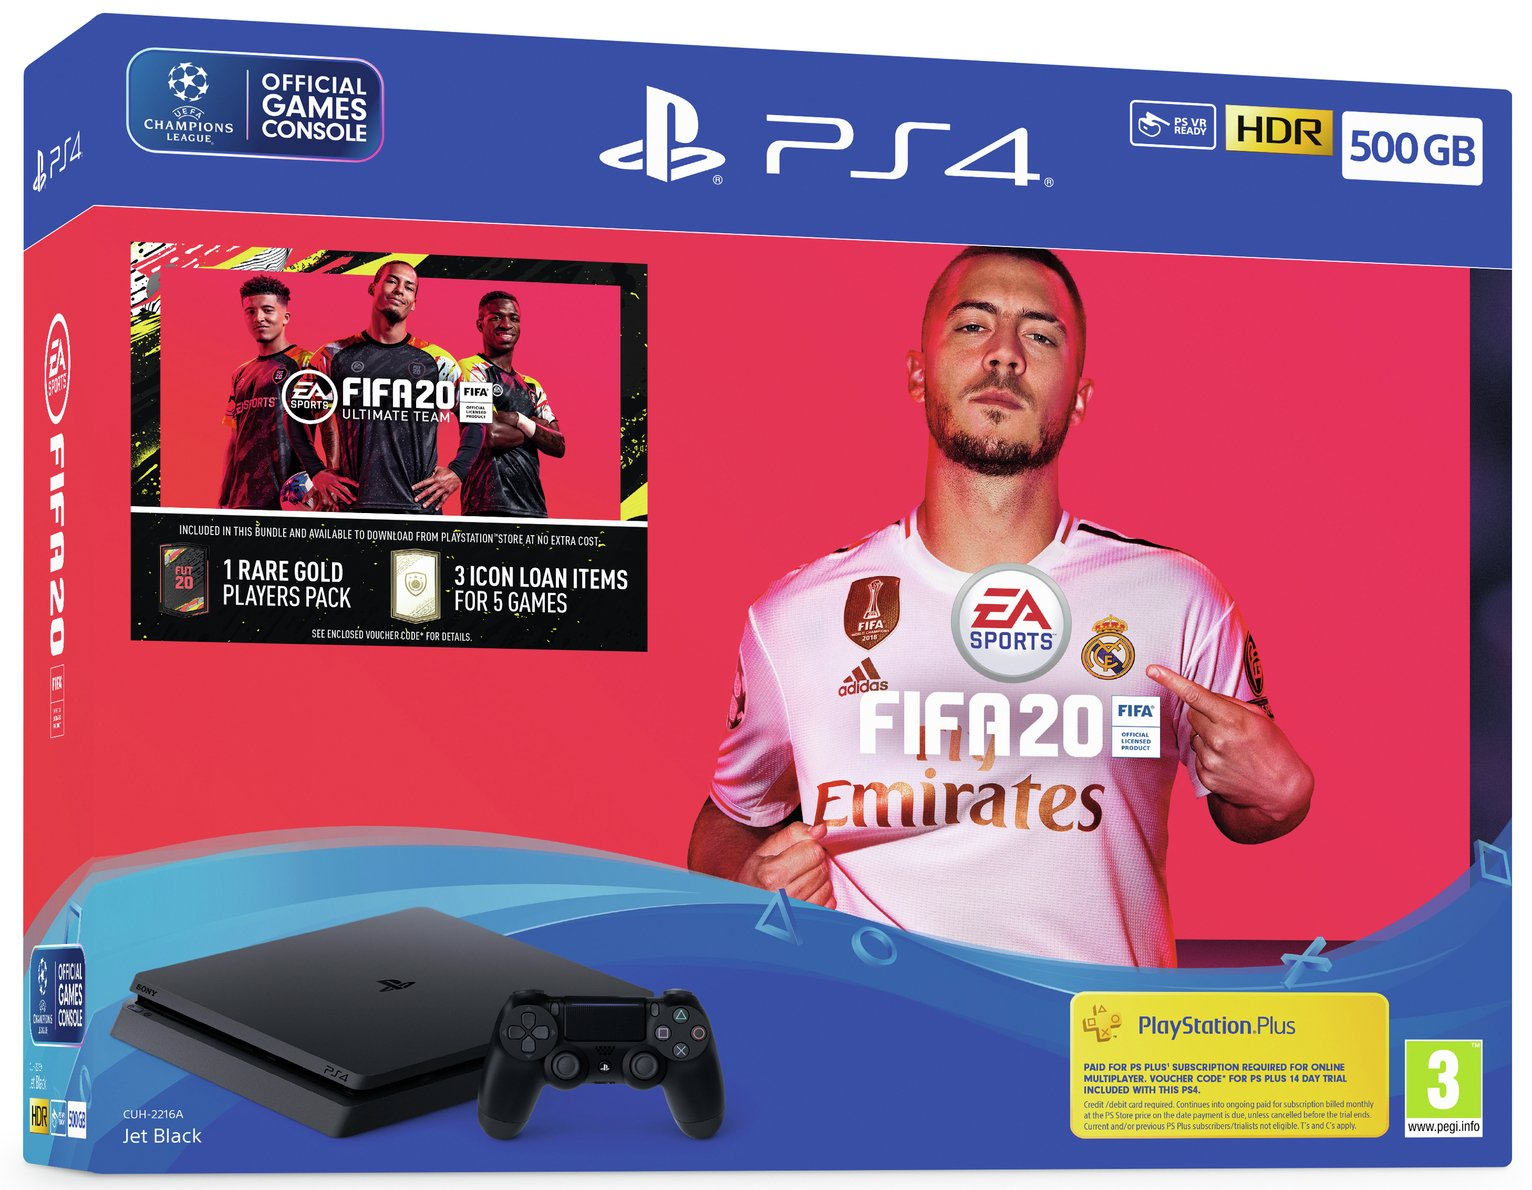 Sony PS4 500GB Console & FIFA 20 Bundle